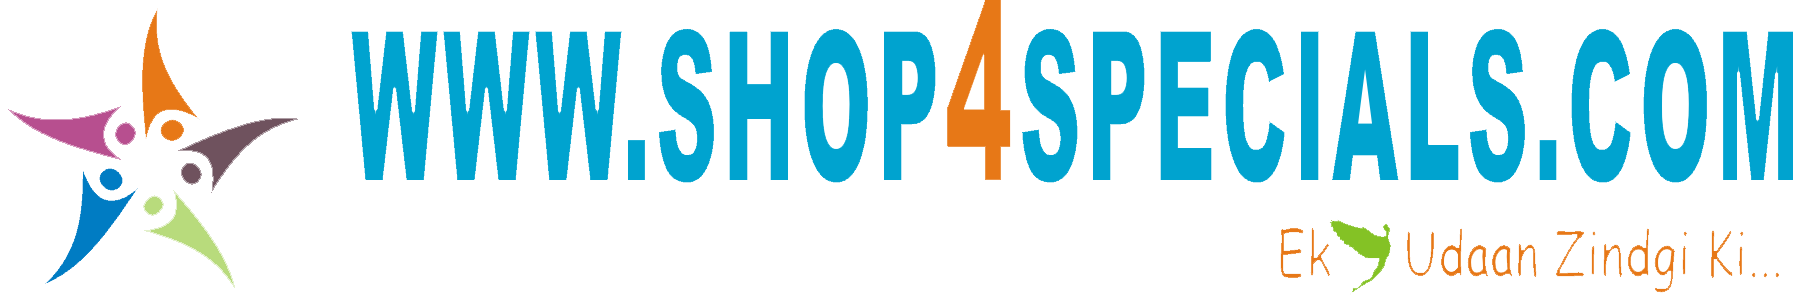 official_logo_of_shop4specials.com